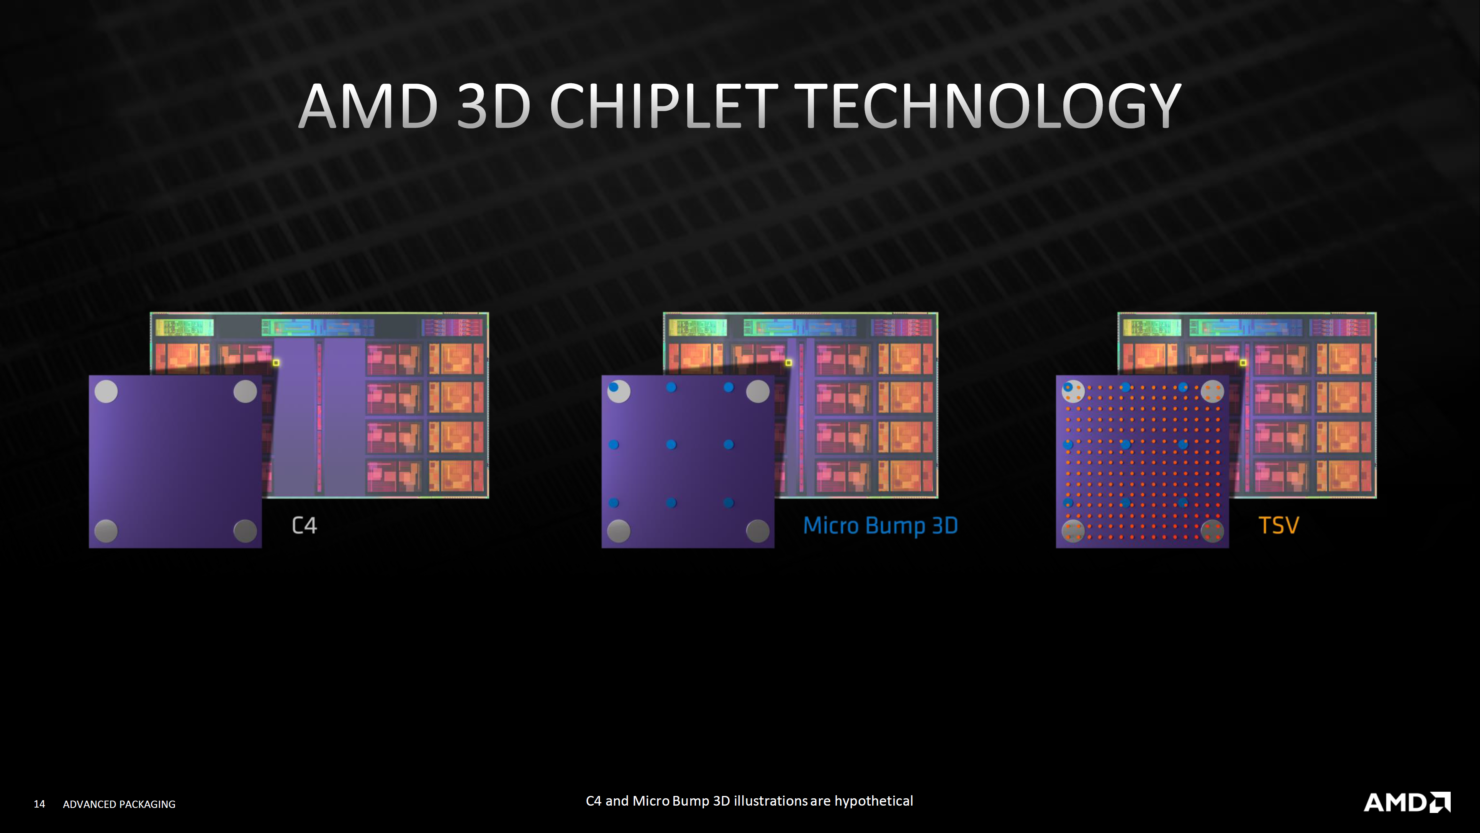 amd-advanced-3d-chiplet-packaging-3d-stacking-technologies-3d-v-cache-_13